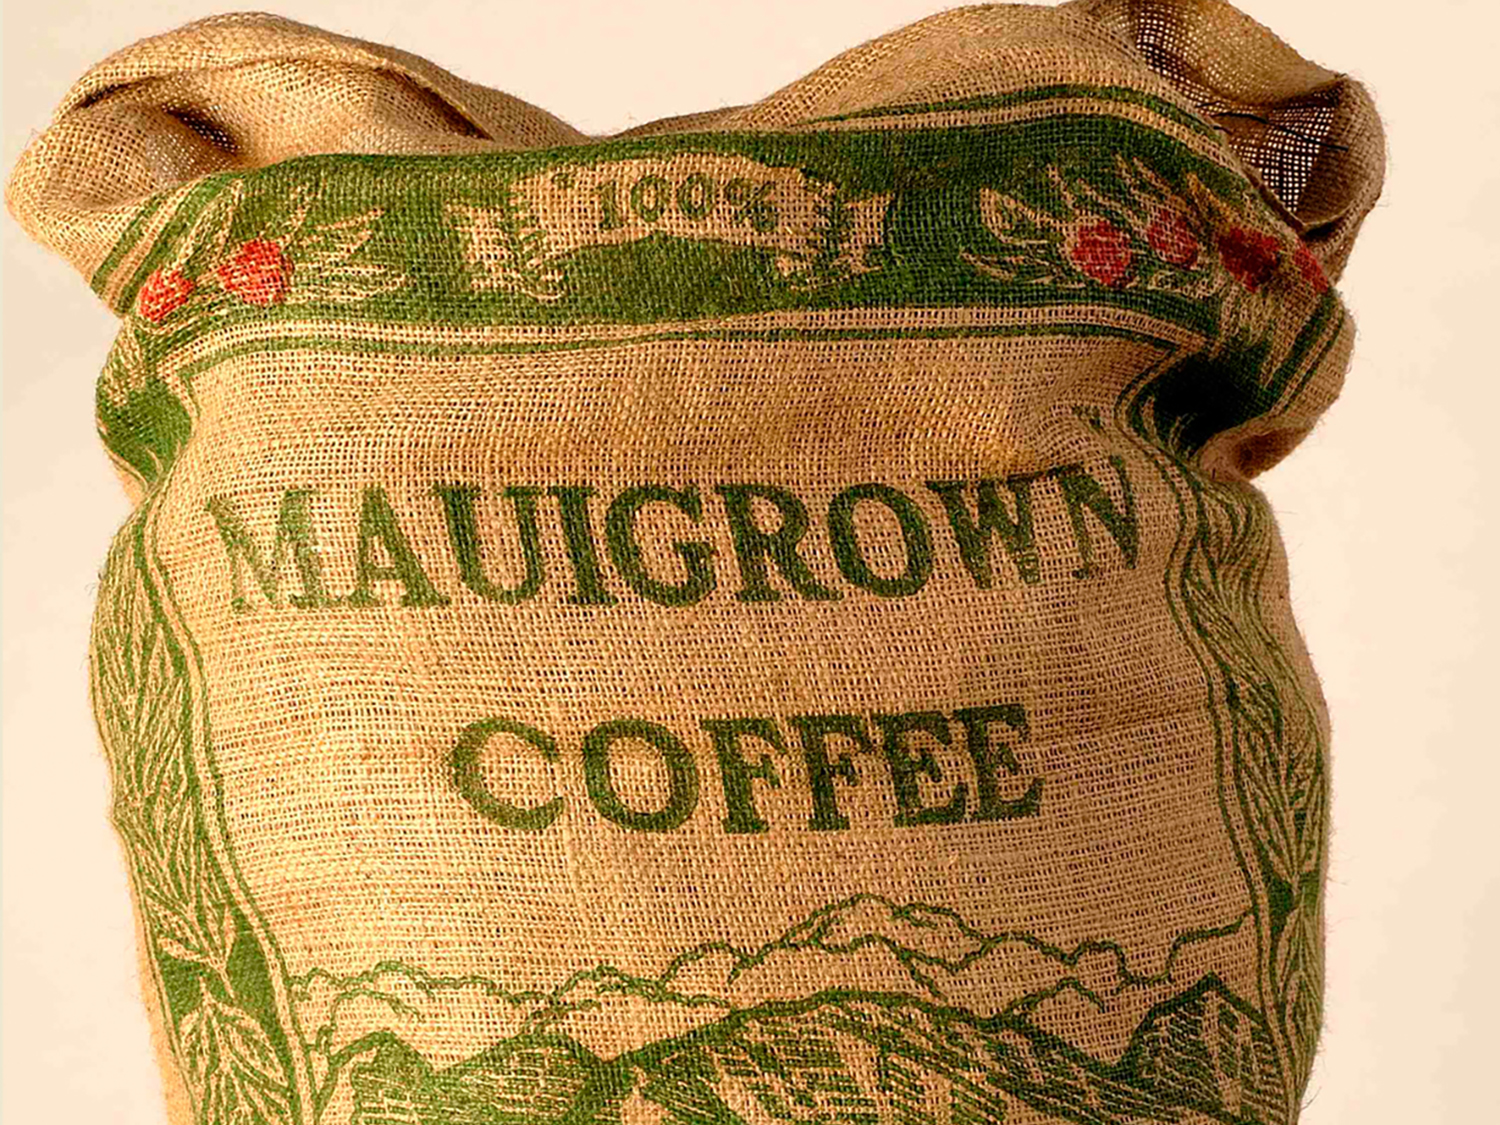 MauiGrown Coffee's signature 100 lb. burlap bag.